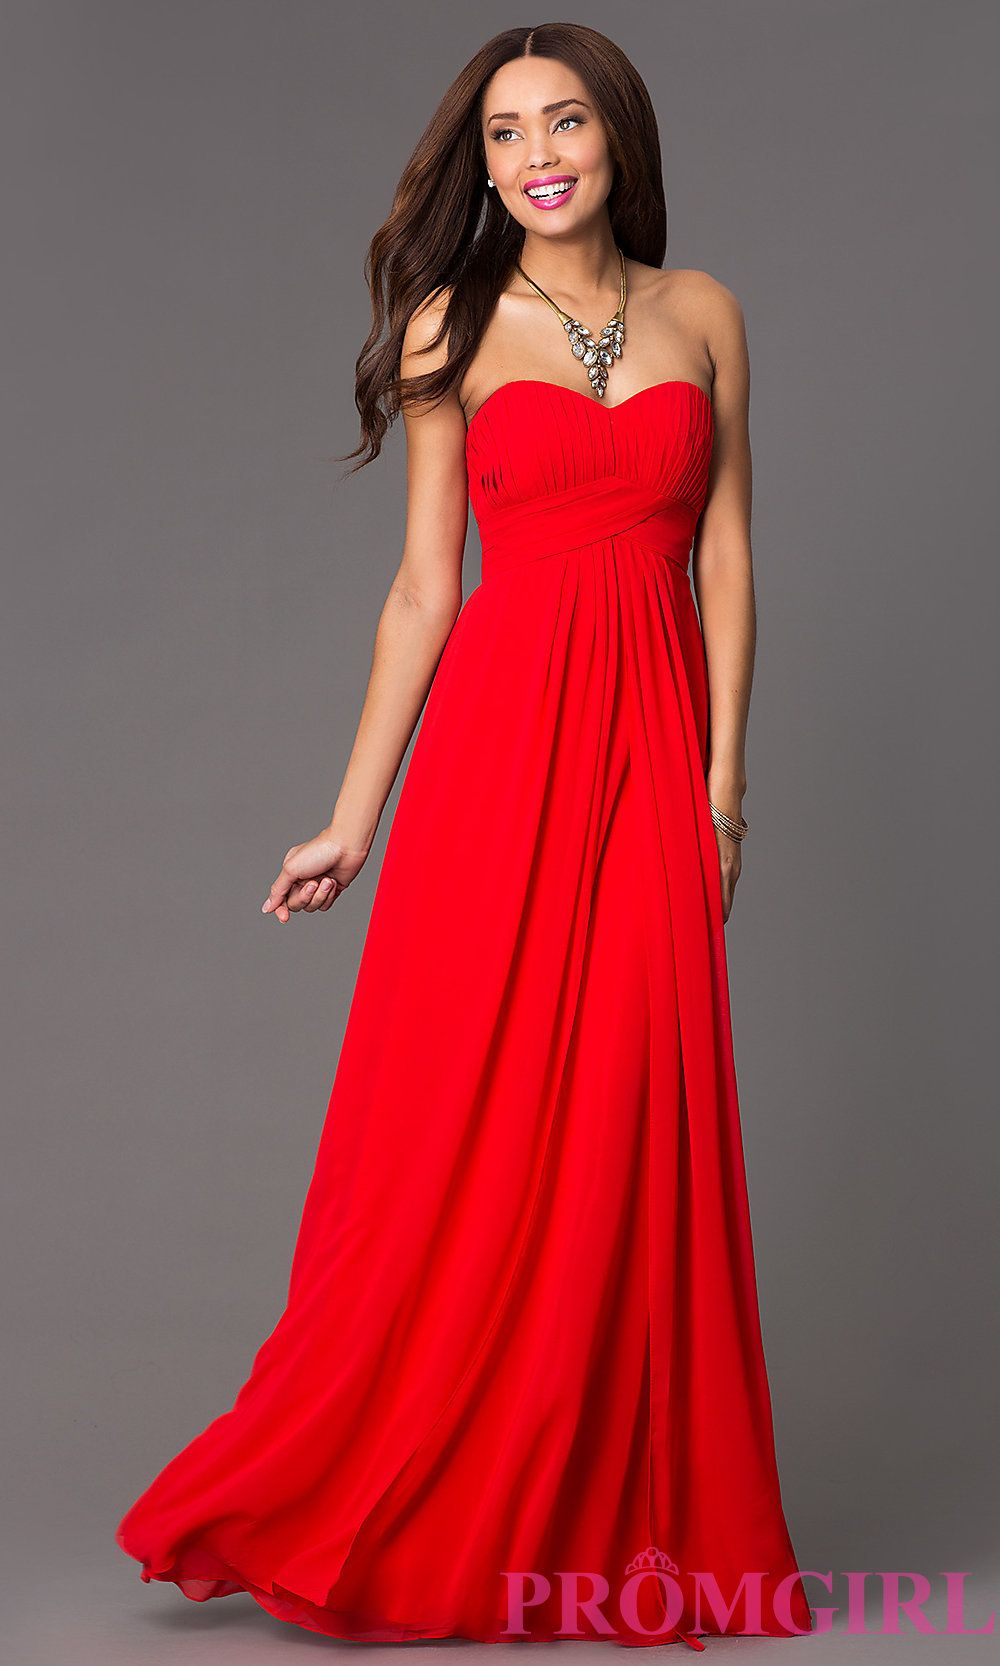 Pin by dodo on goÛts fashion pinterest prom empire and dream dress